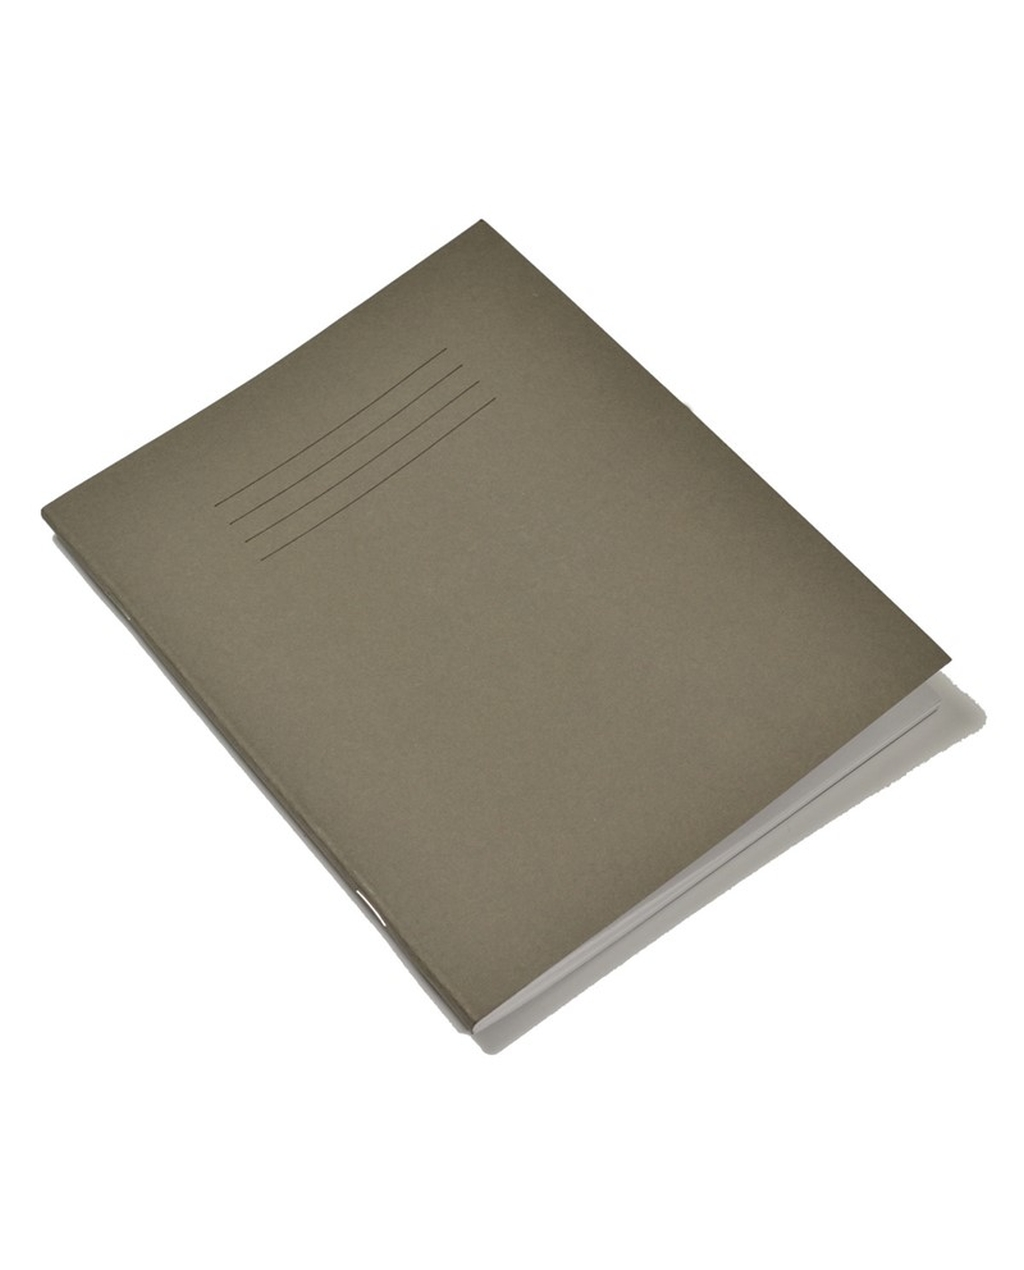 Exercise Book 9 x 7 (229 x 178mm) Grey Cover 8mm Ruled 48 Pages